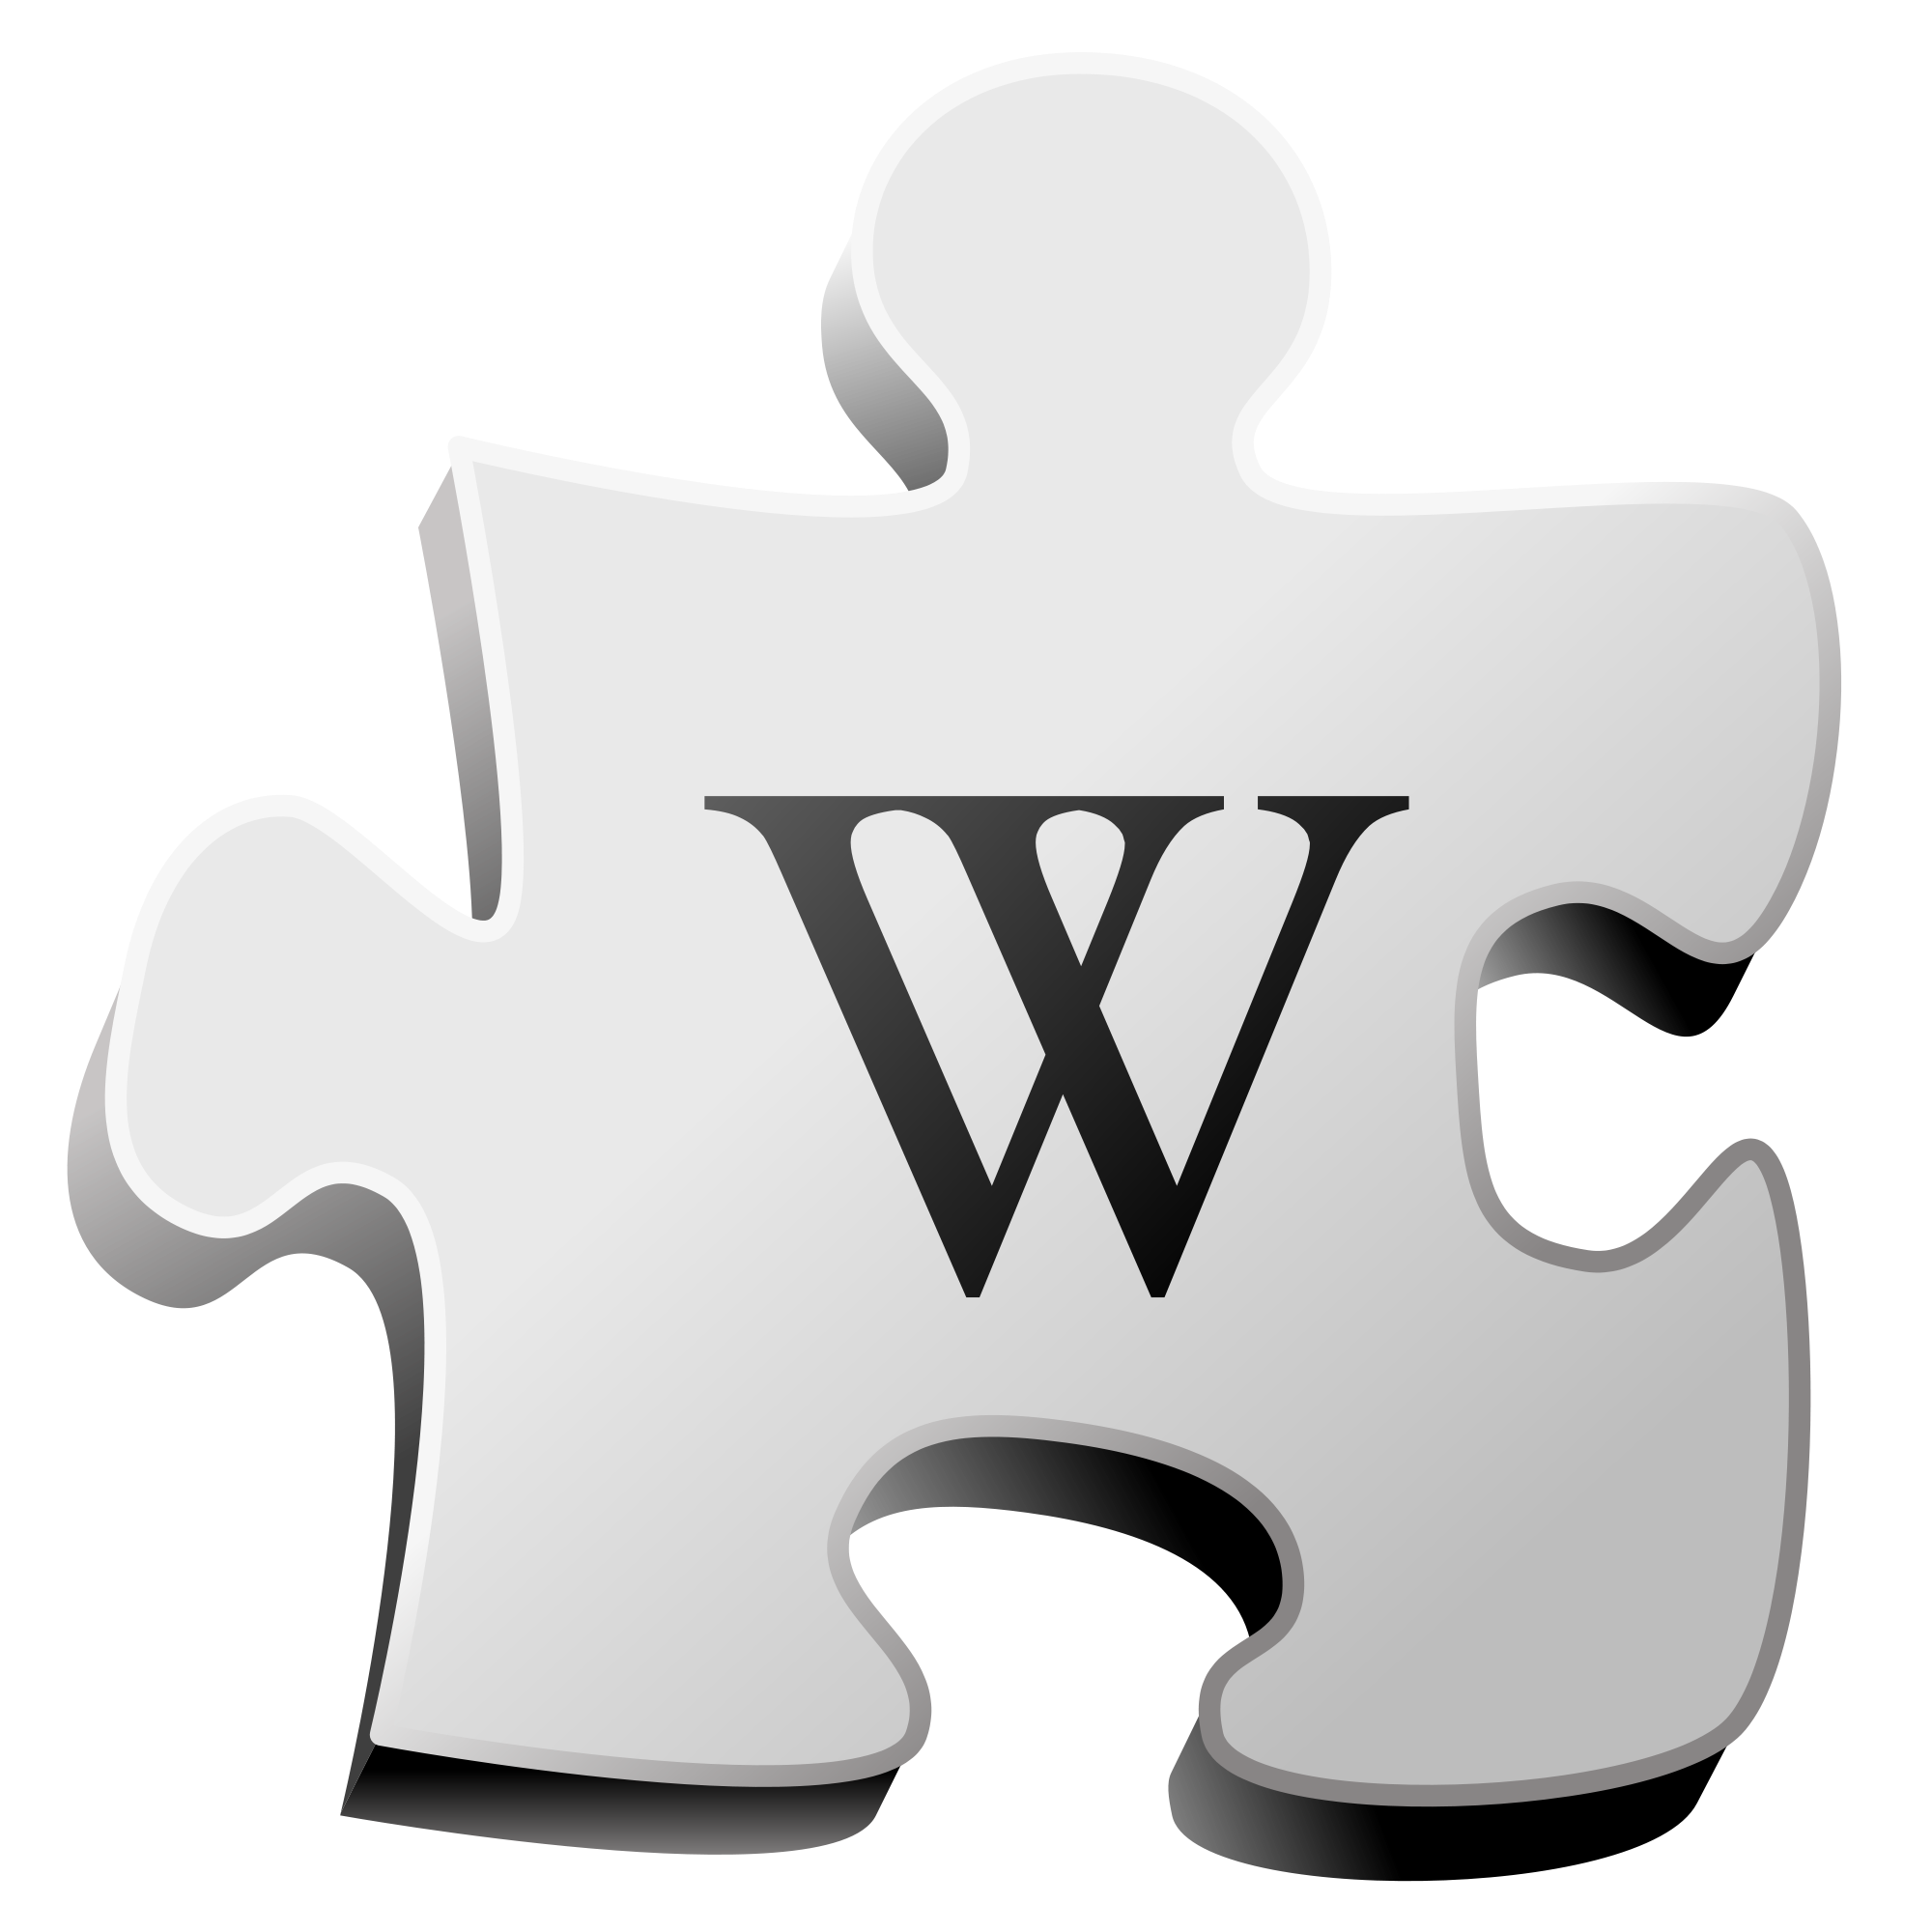 Svg wiki wikimedia. File puzzle commons open